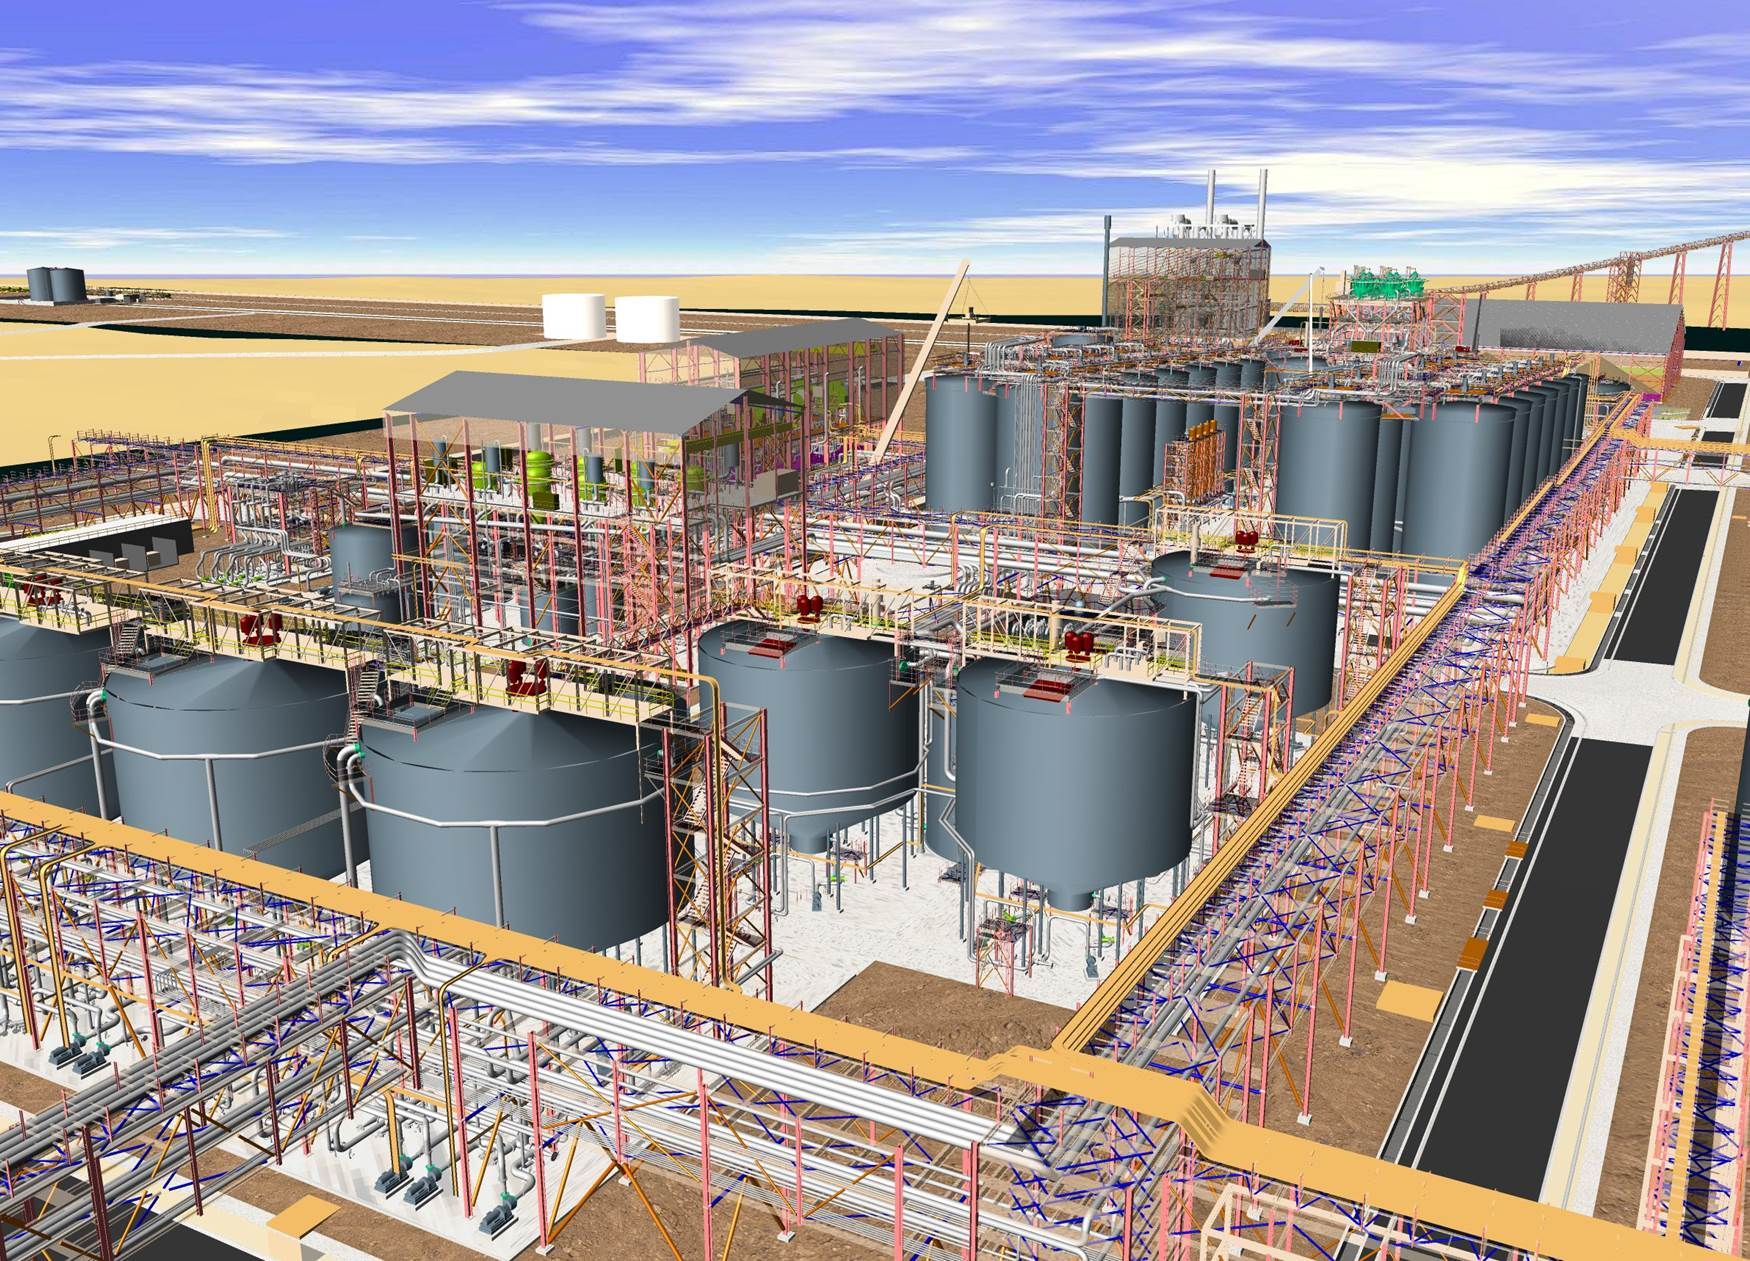 3D model of refinery design